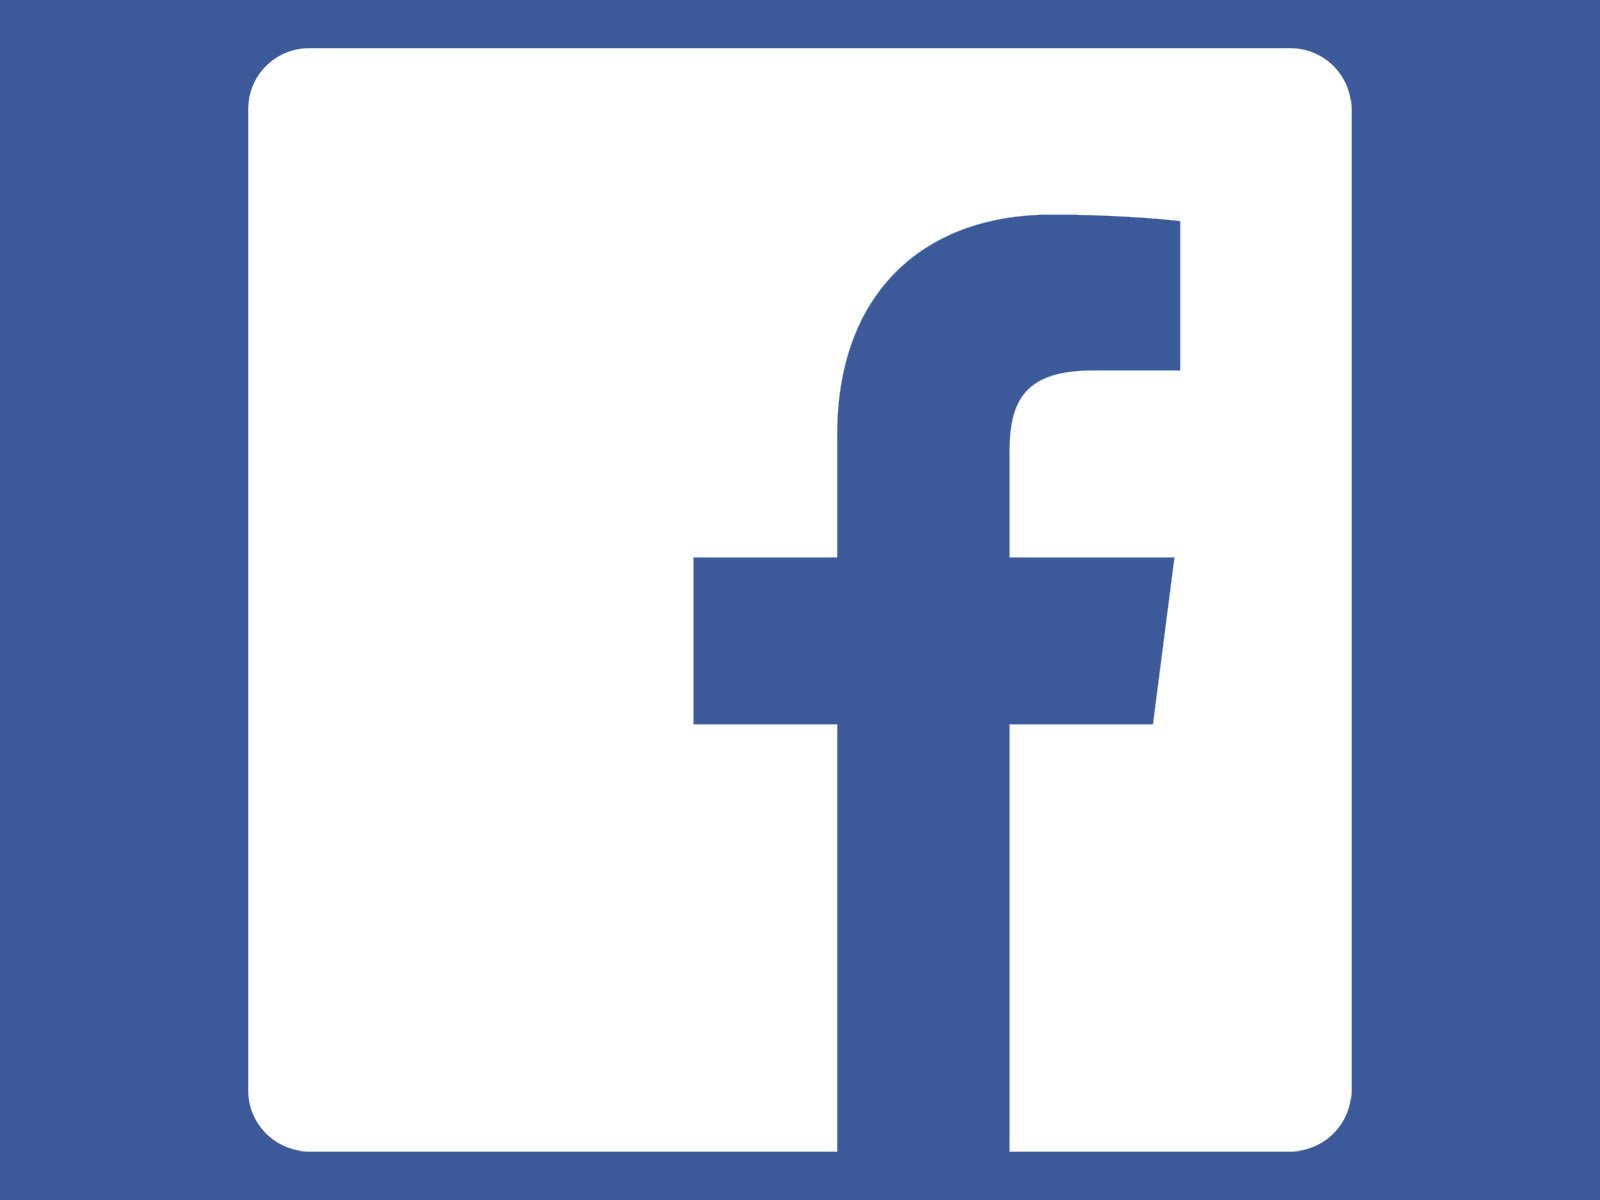 facebook logo facebook symbol meaning history and evolution rh 1000logos net official facebook logo 2017 official facebook logo 2014